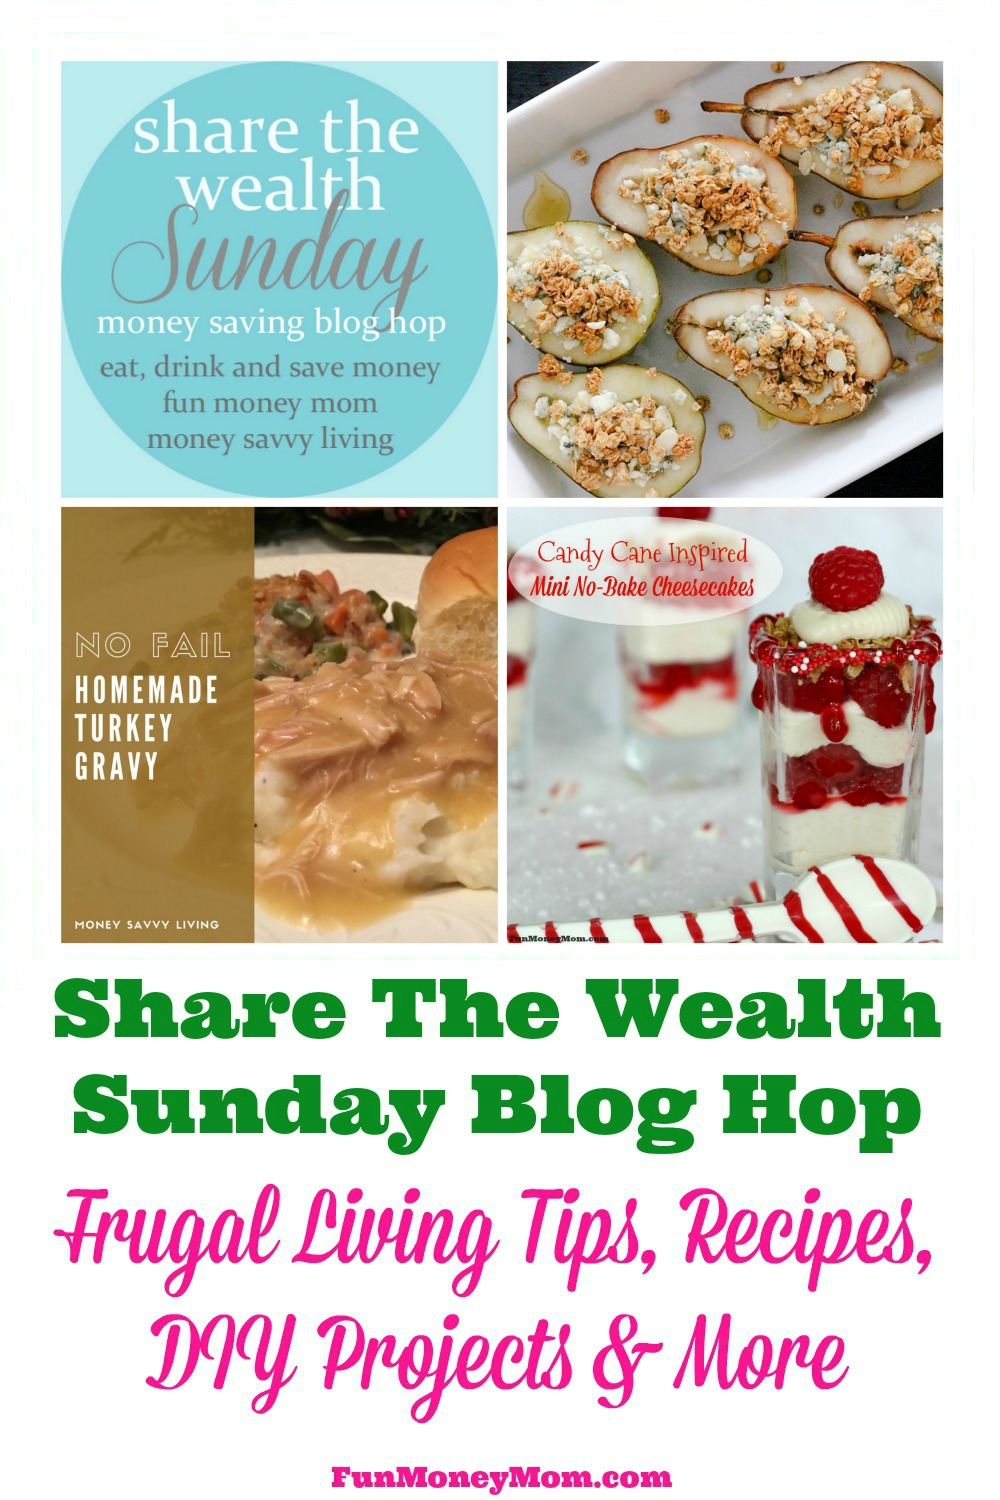 Join us for the Share The Wealth Blog Hop (week of 12/17/16)